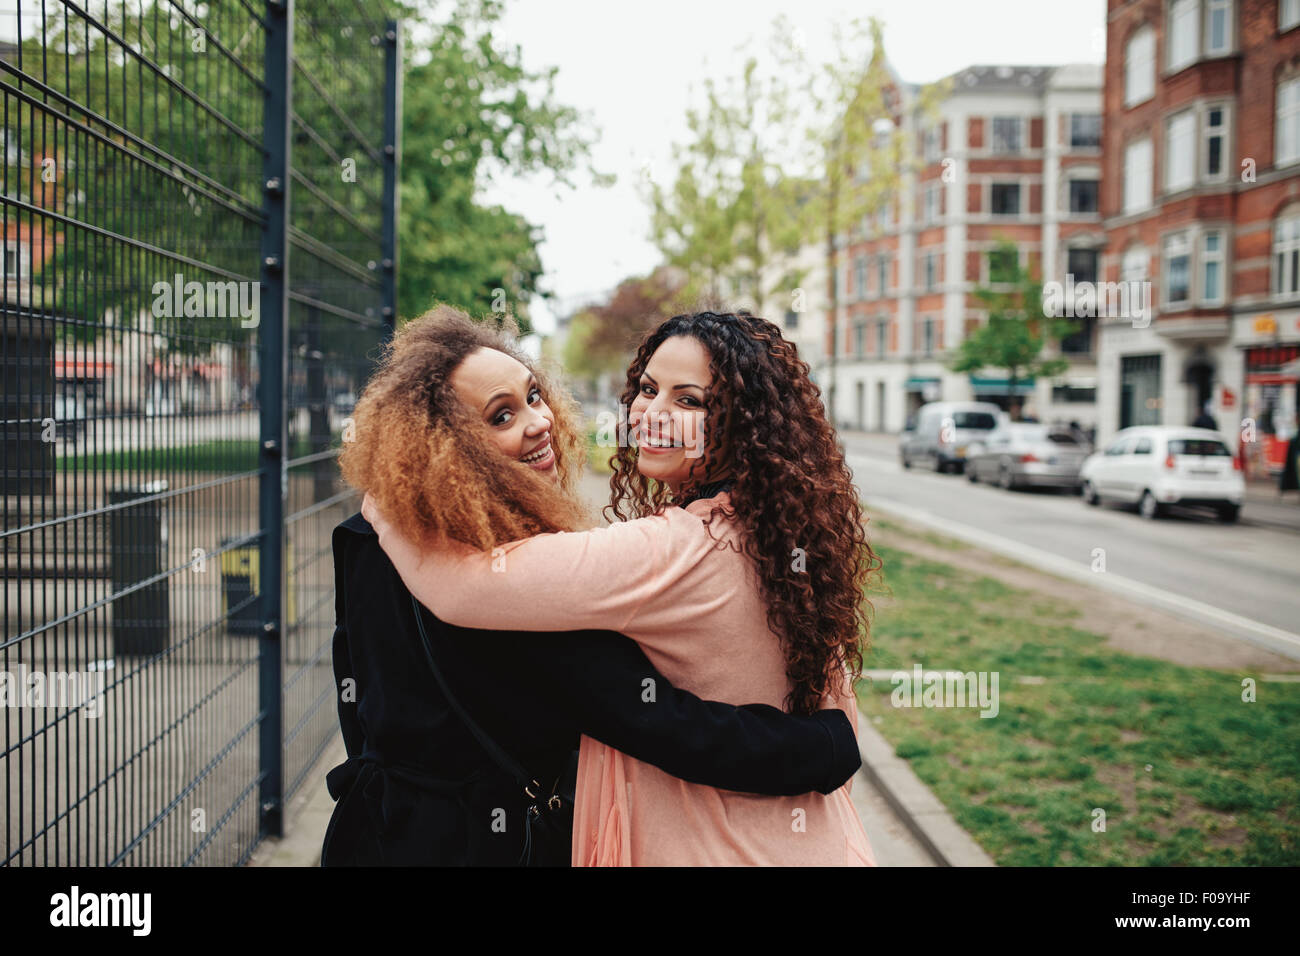 Outdoor shot of two girlfriends walking through town looking over shoulder smiling. Happy young women walking together - Stock Image